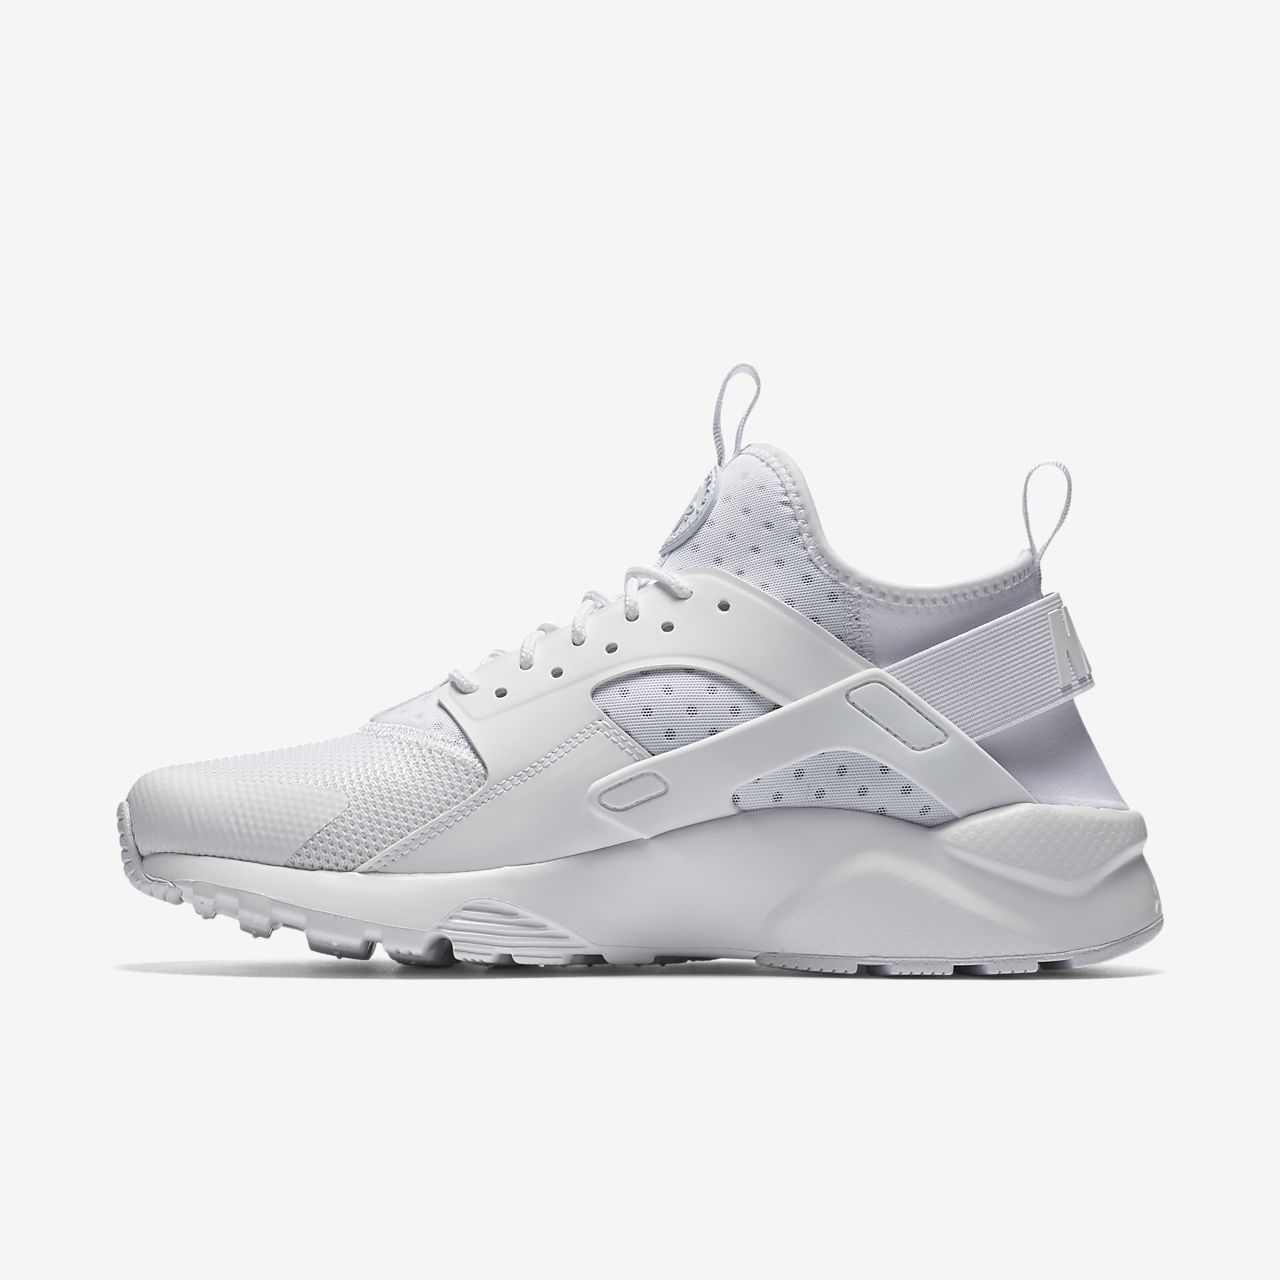 new concept f1f7f 0efa1 ... Nike Air Huarache Ultra Mens Shoe